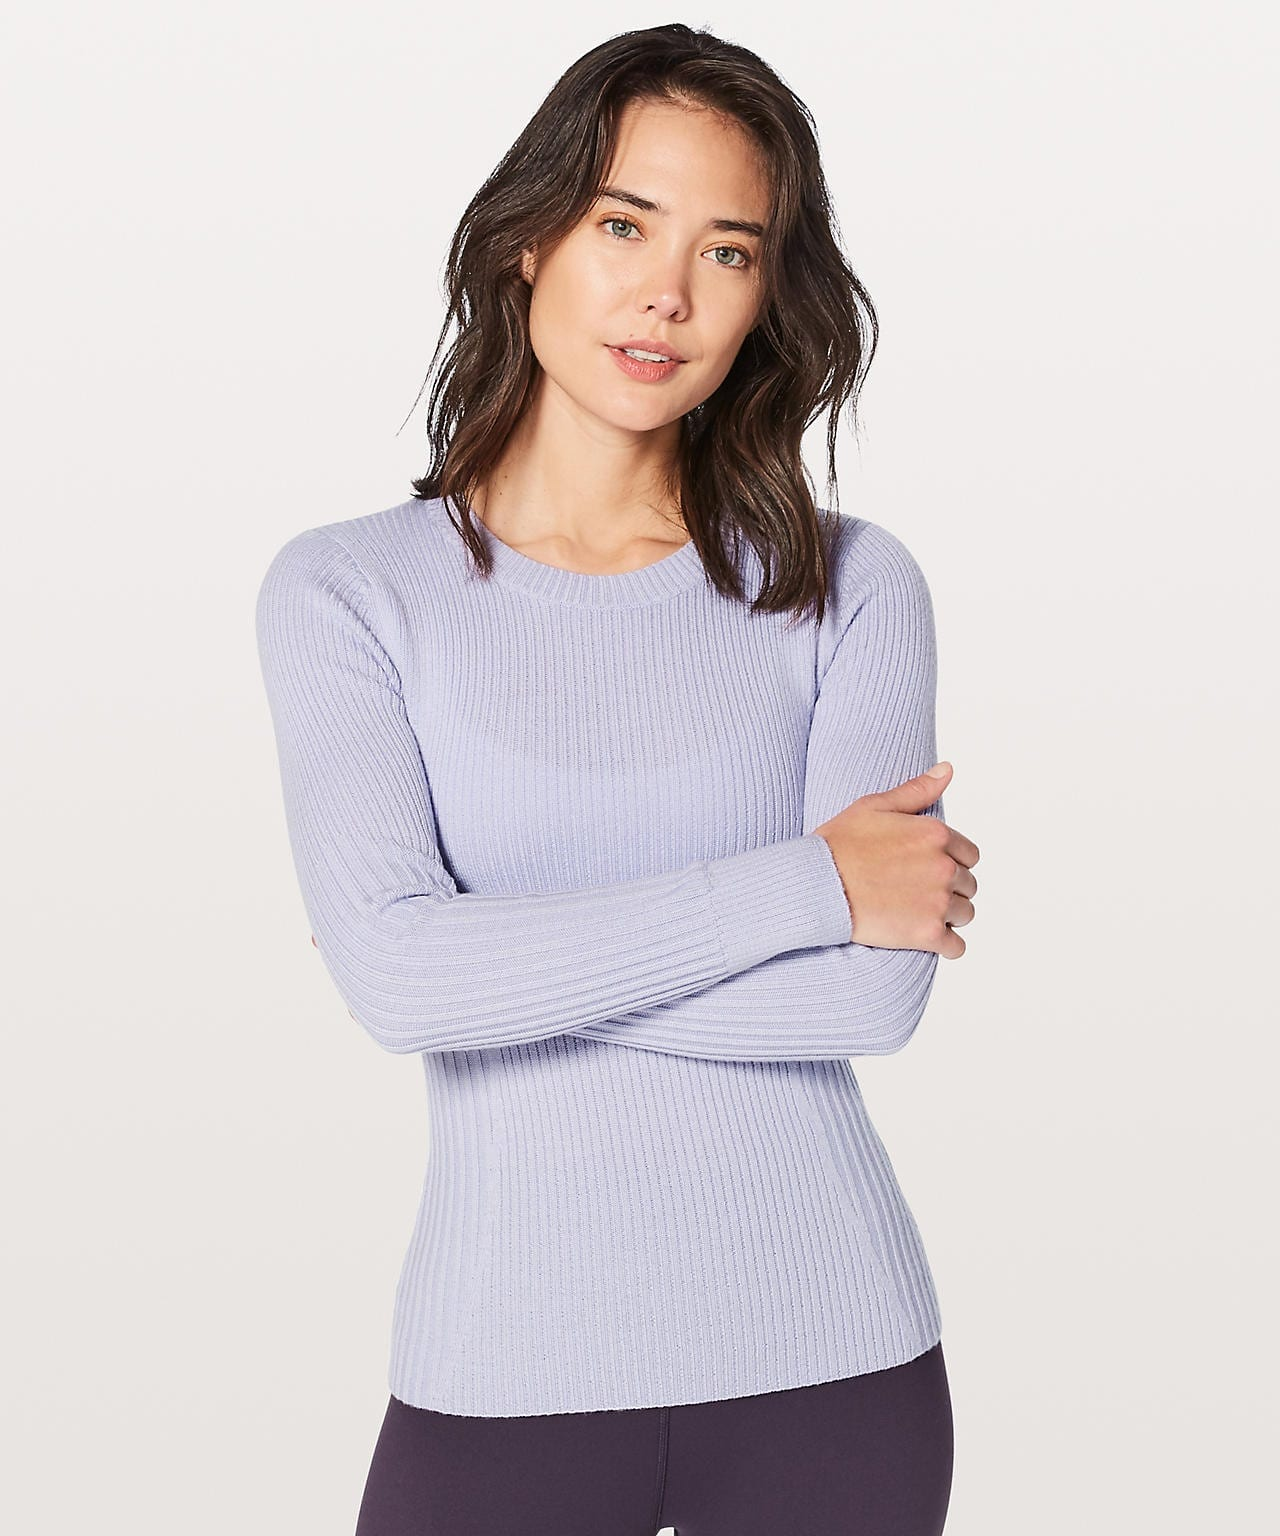 Feeling Balanced Sweater